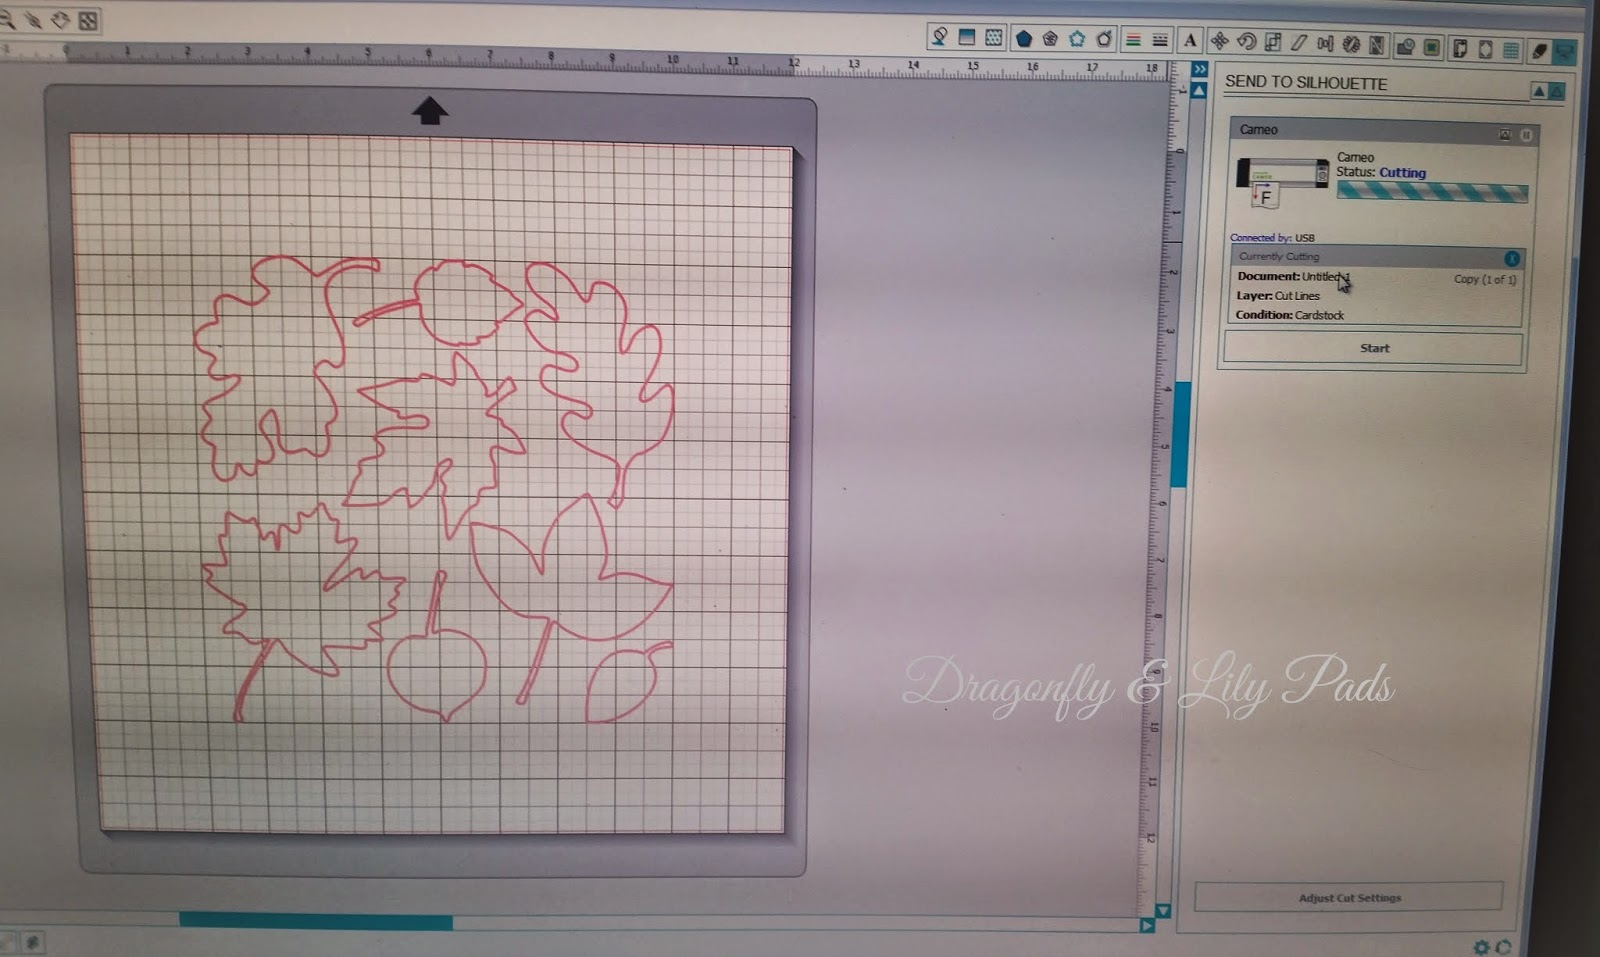 Silhouette screen, Leaves, Cut set up, Red, Blue, Dragonfly & Lily Pads